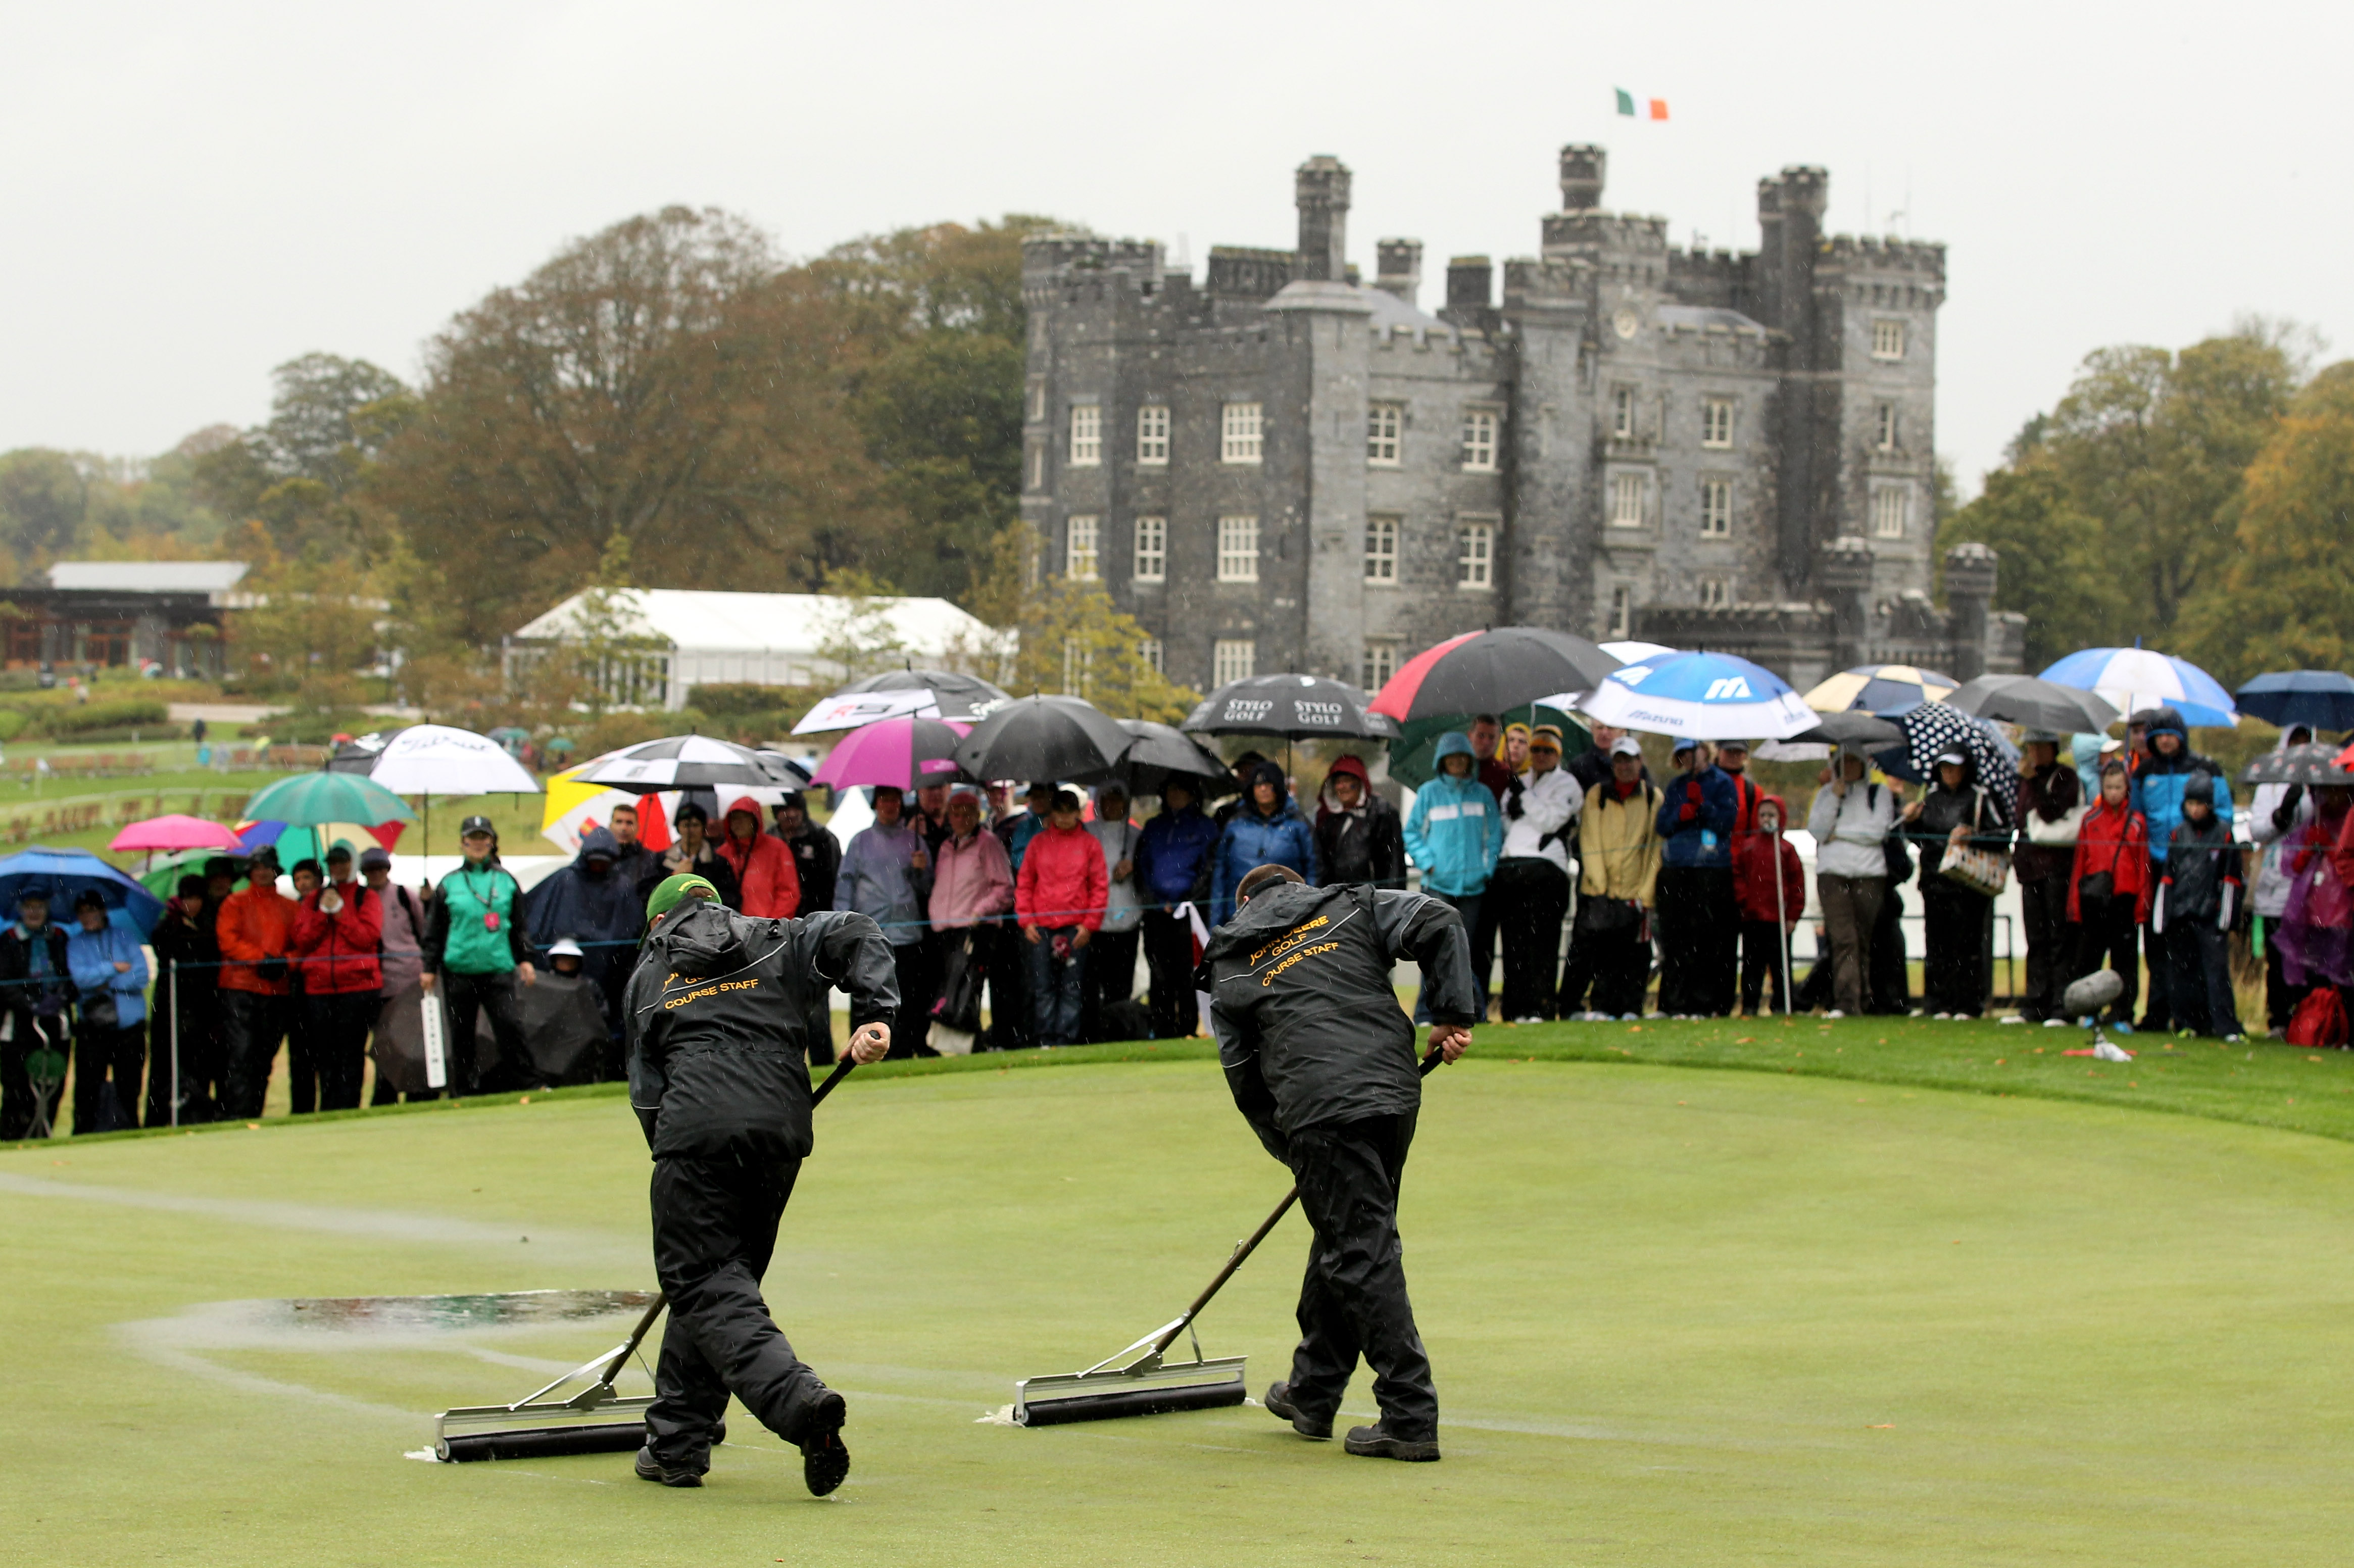 The match was level at 12.5-12.5 before rain stopped play (Photo: Getty Images)